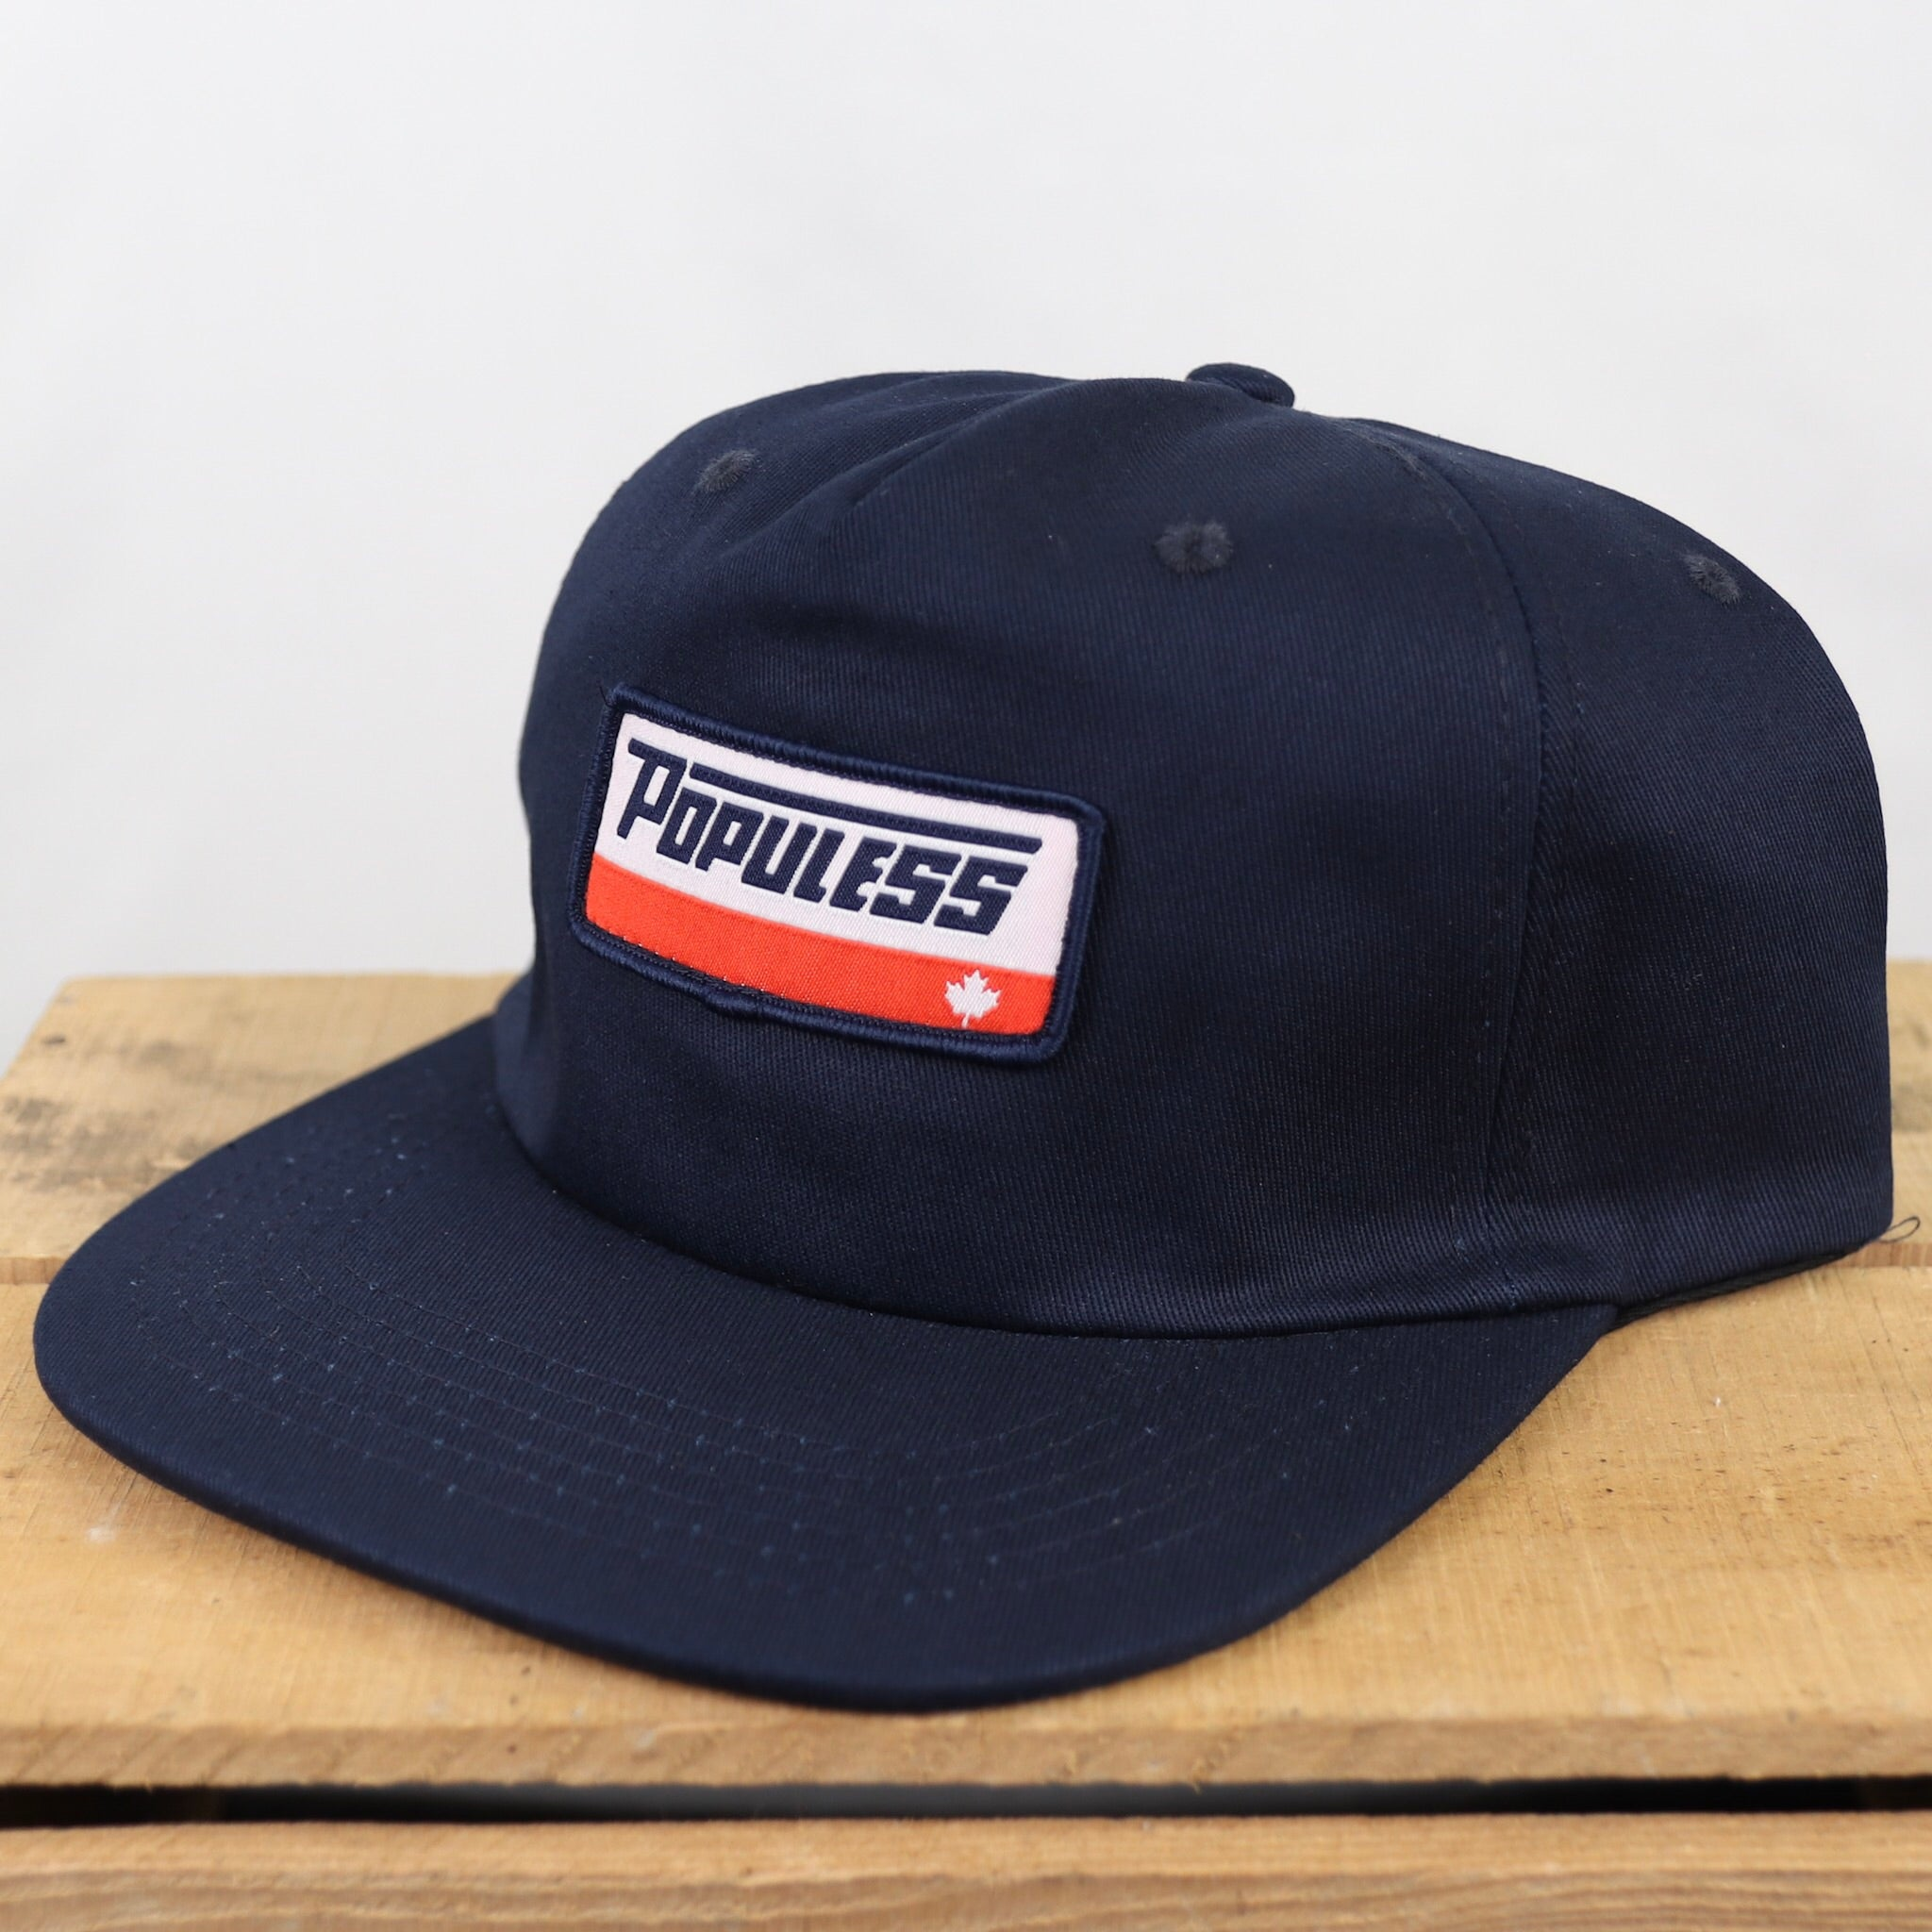 The Turbo Hat - Navy - The Populess Company